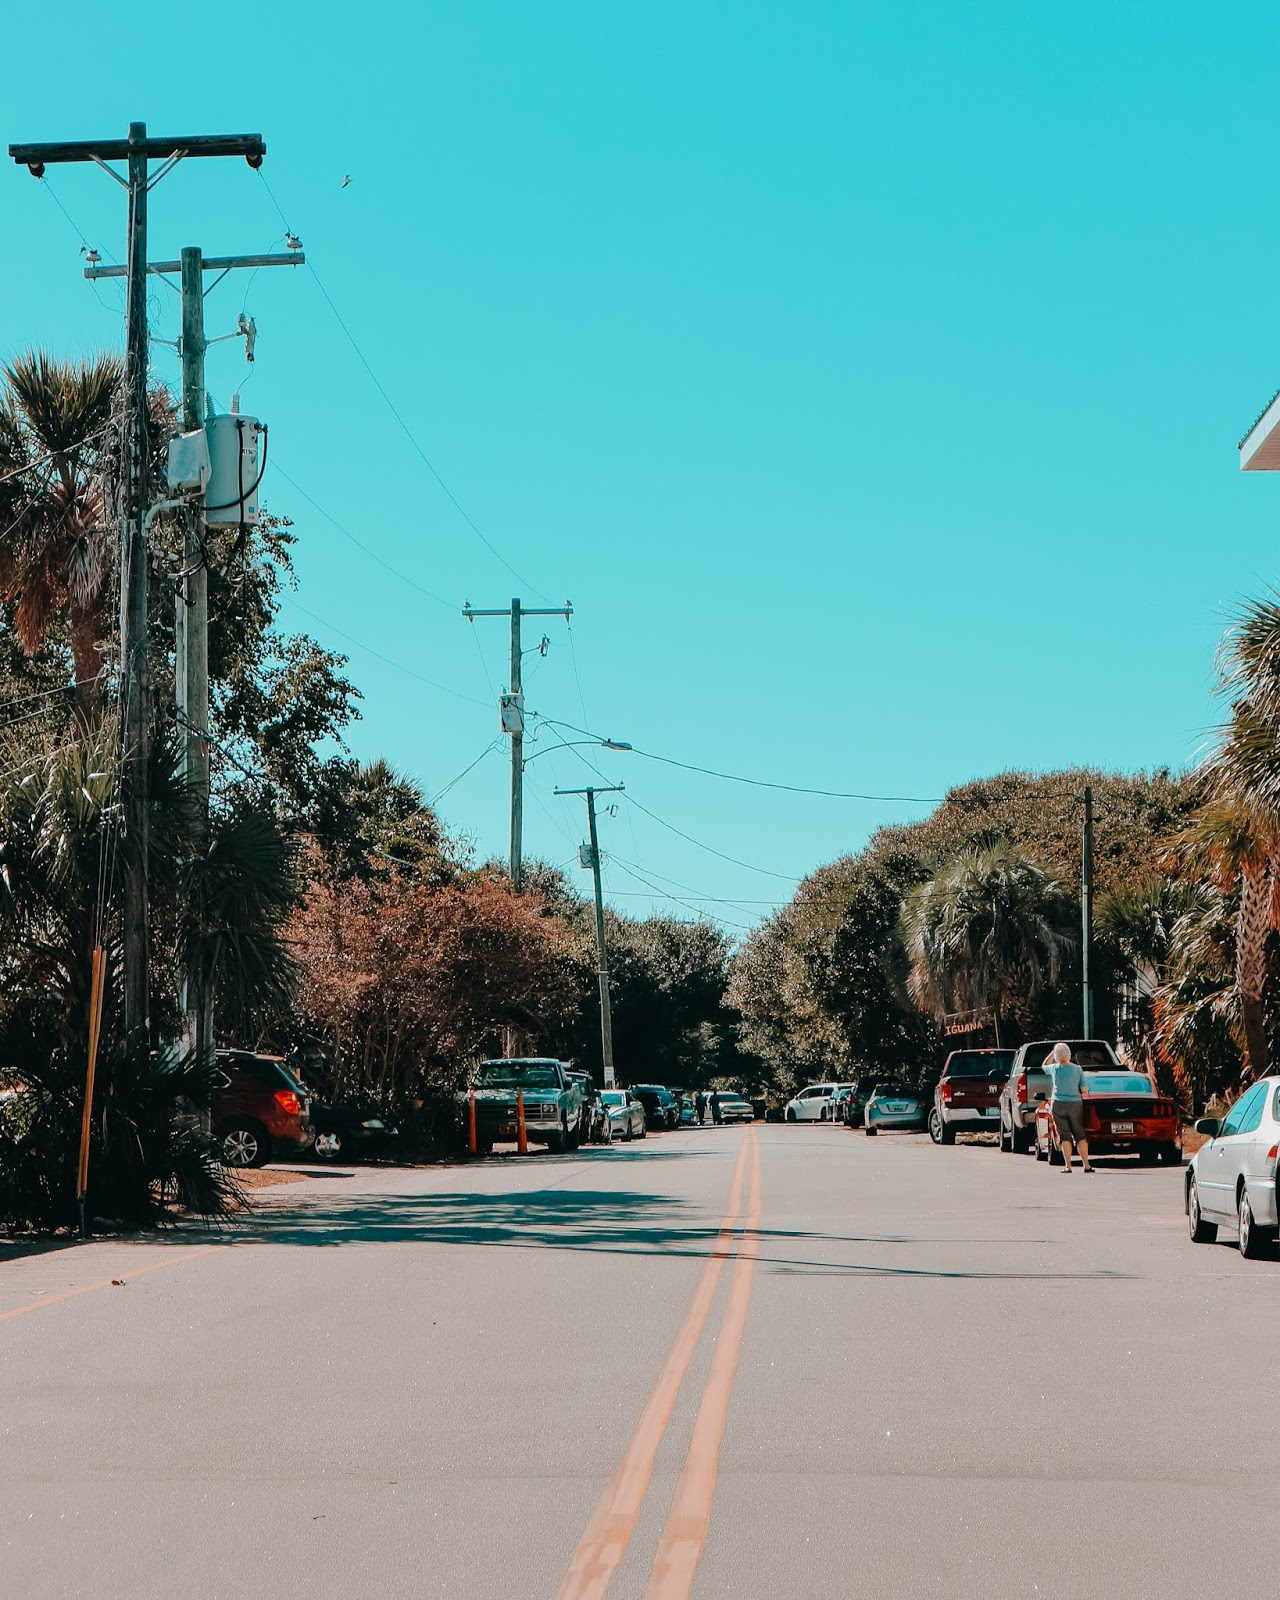 Falling In Love With Folly Beach, South Carolina - ItsHollieAnn